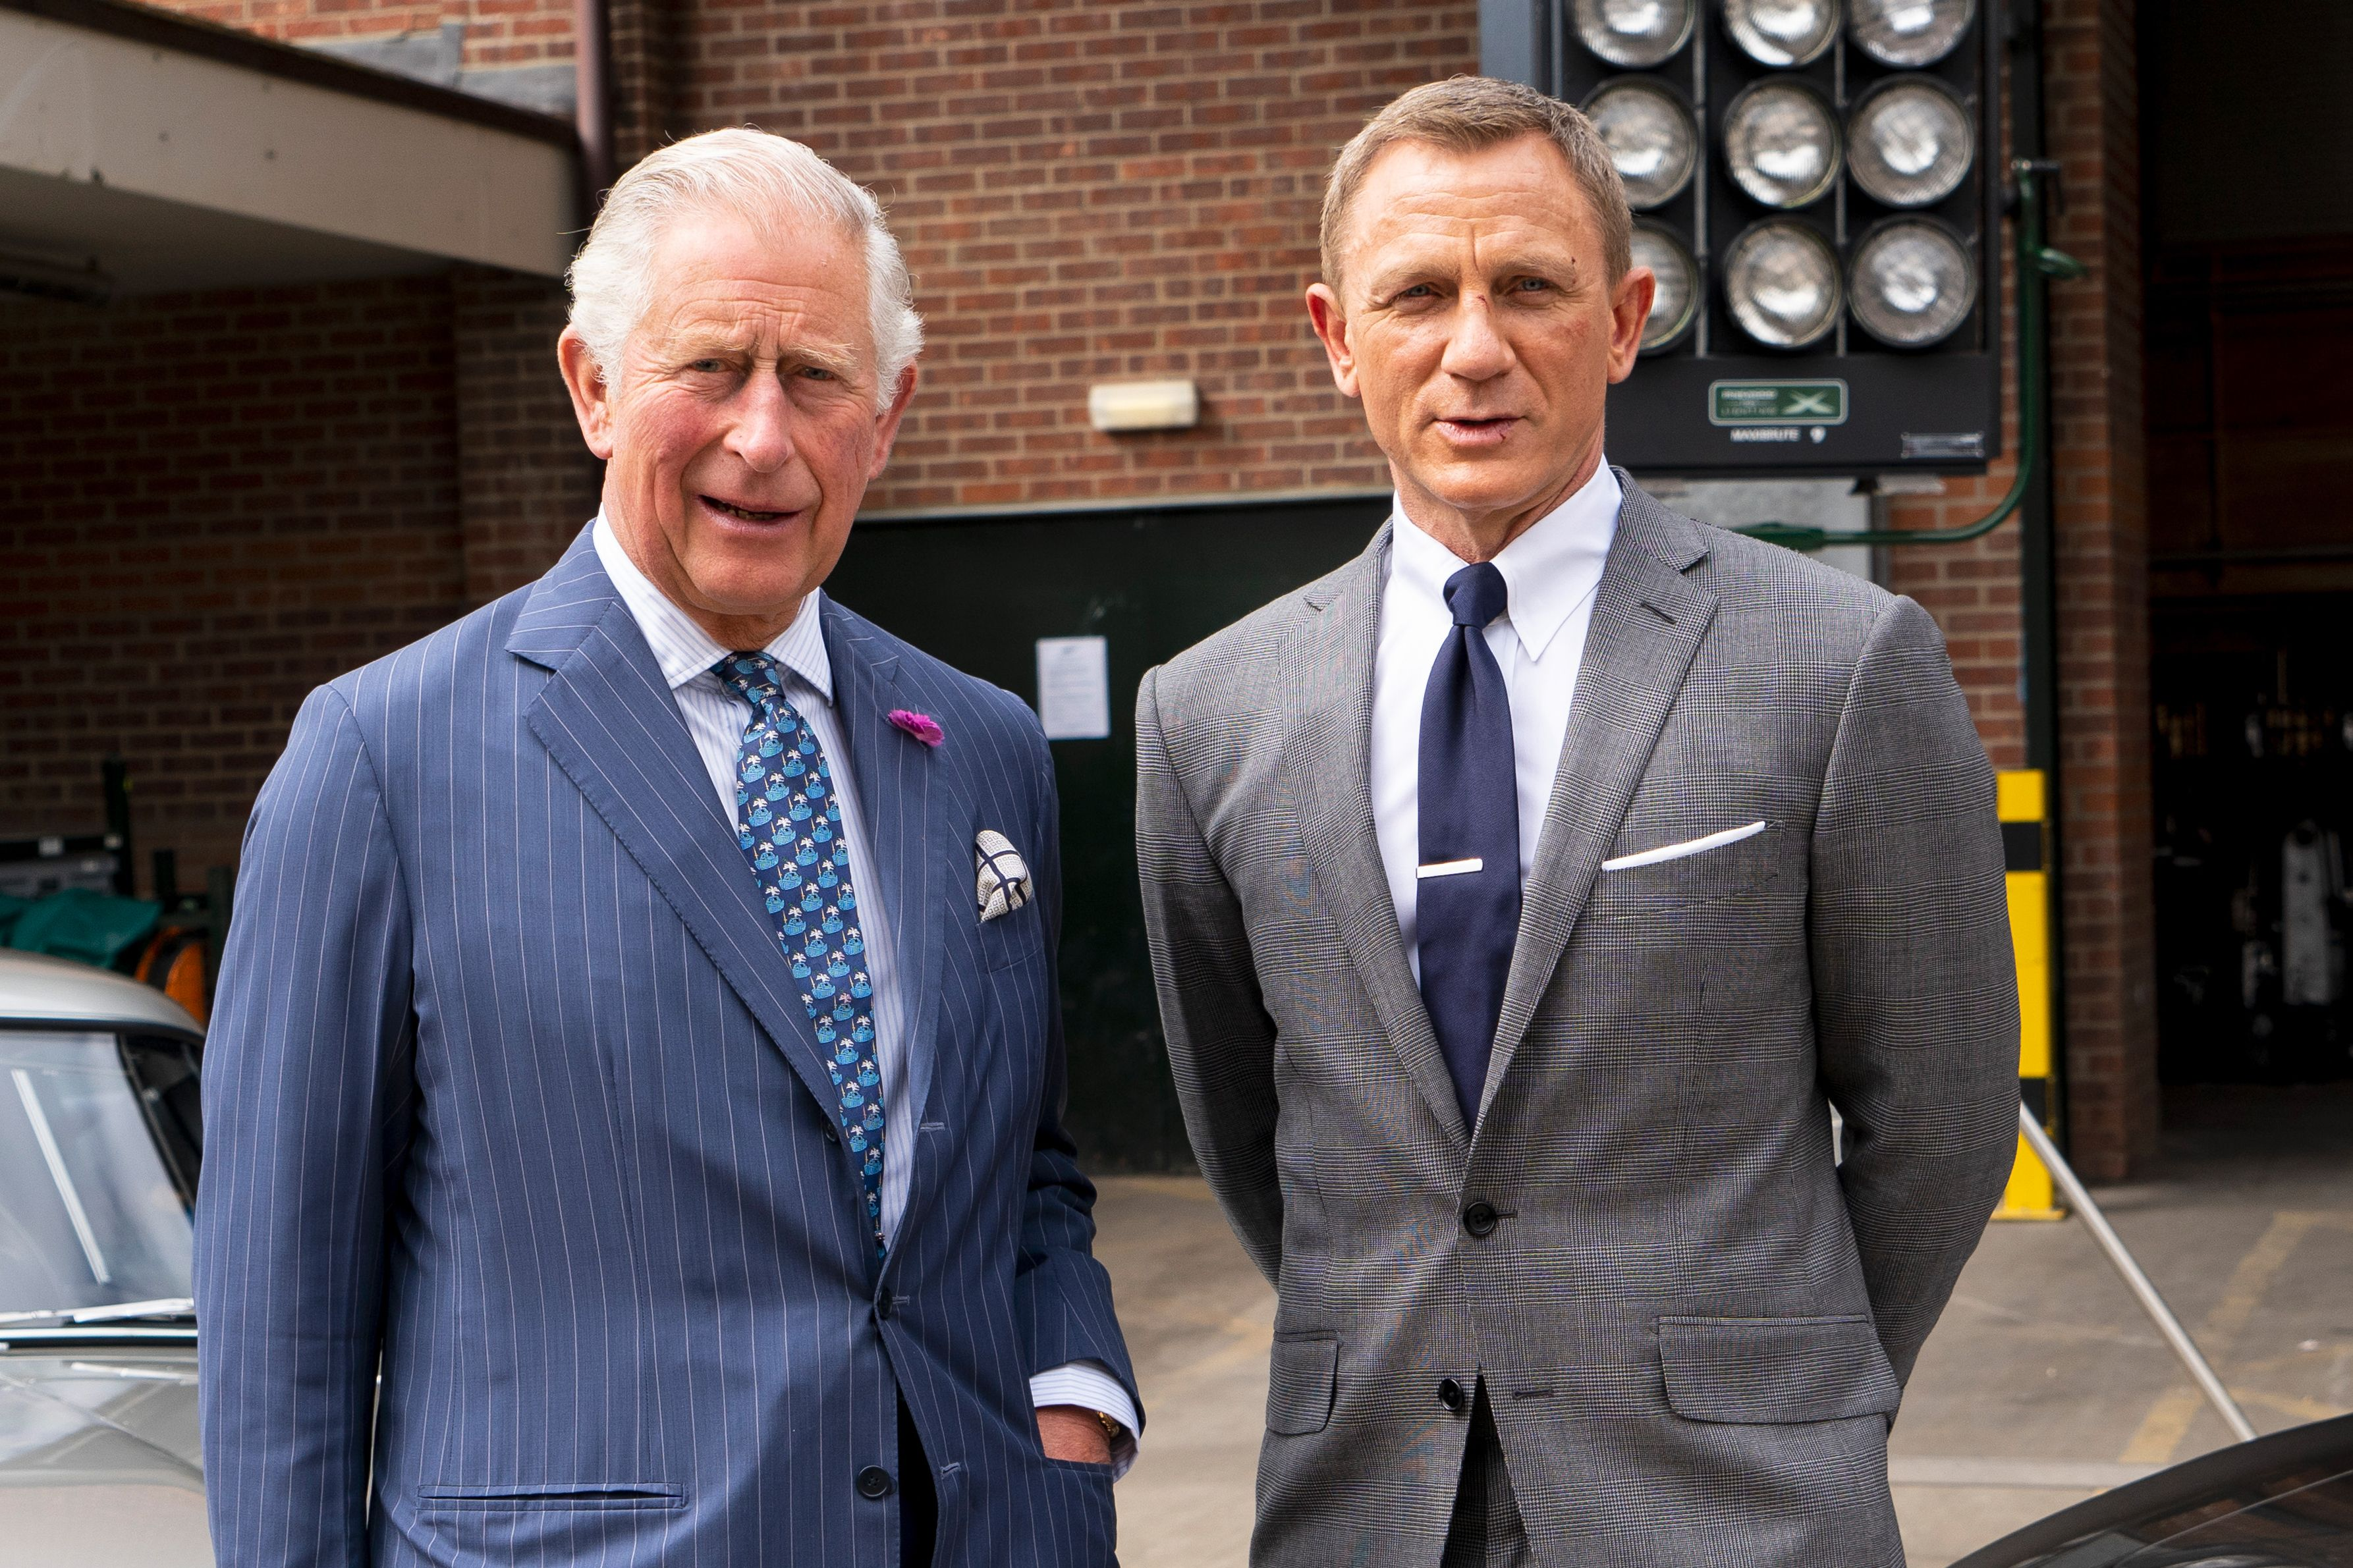 Prince Charles has reportedly been offered a role in the new James Bond film